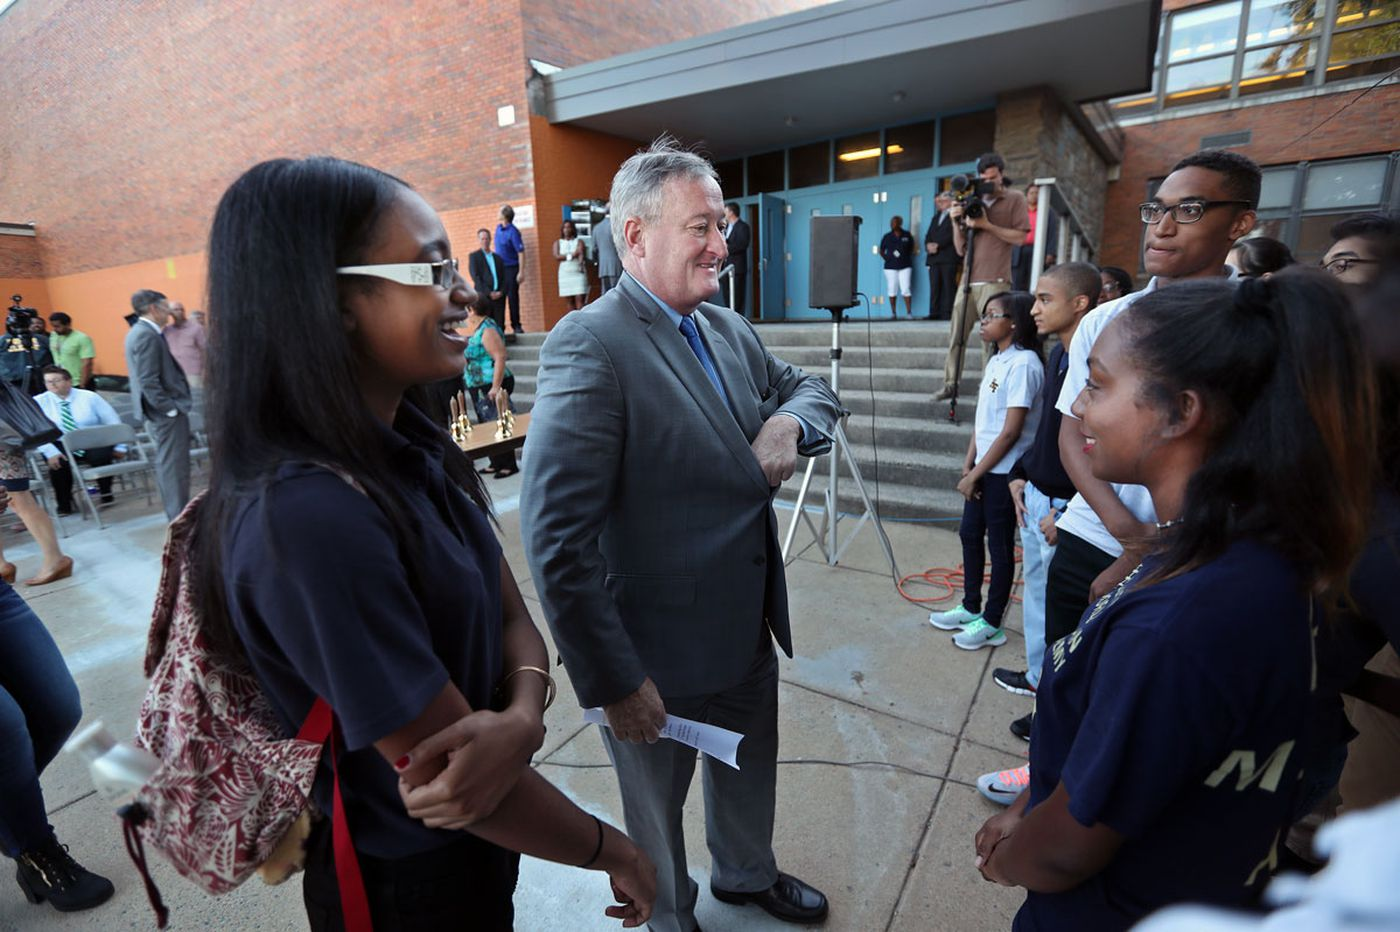 Bells toll as summer ends for 130K Philadelphia public school students